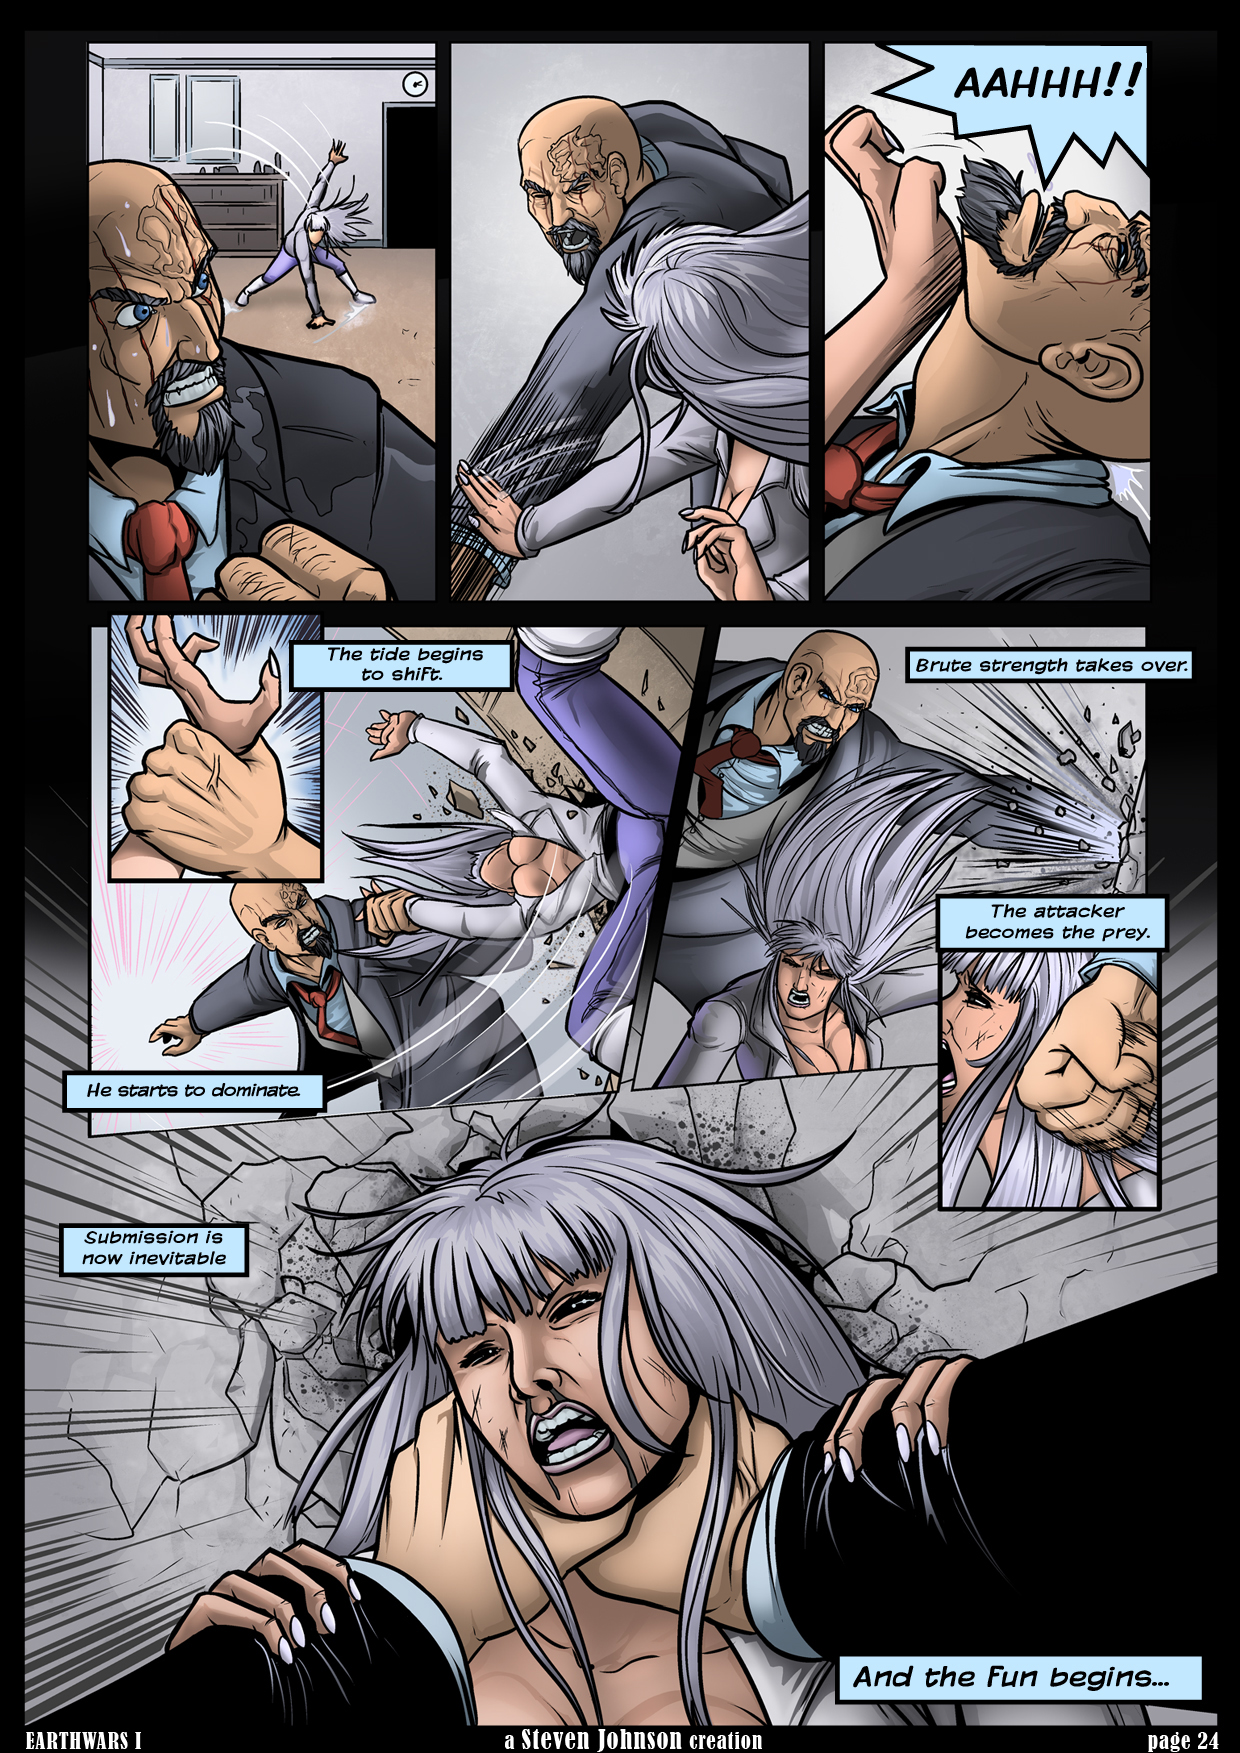 Comic 24 - DRAGON HEART * Updated Twice A Month * Follow me at: www.freelanced.com/stevenrjohnson